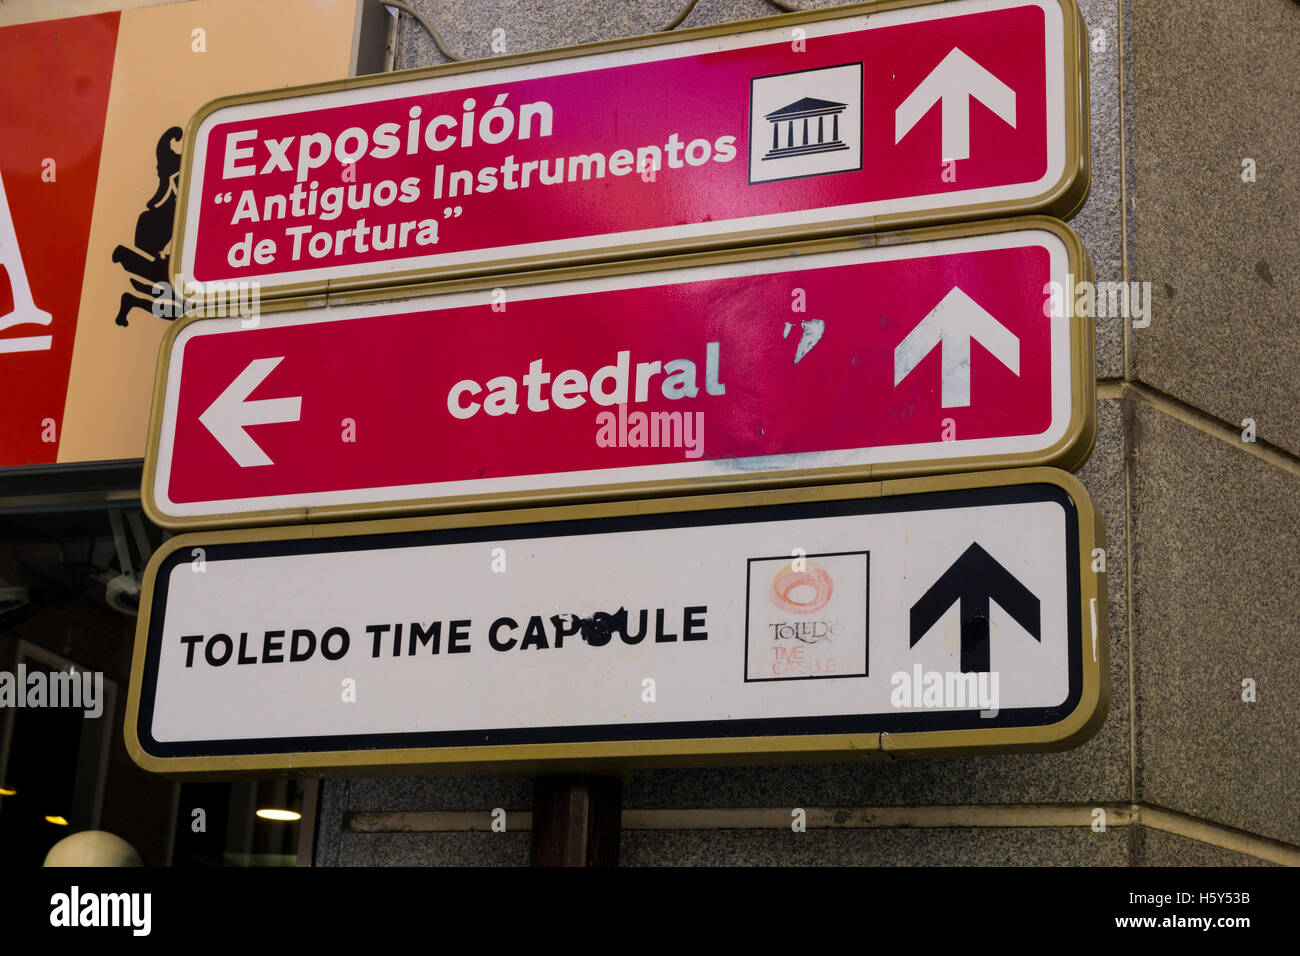 Direction signs for an exhibition of antique torture instruments, the cathedral, and the time capsule. Stock Photo